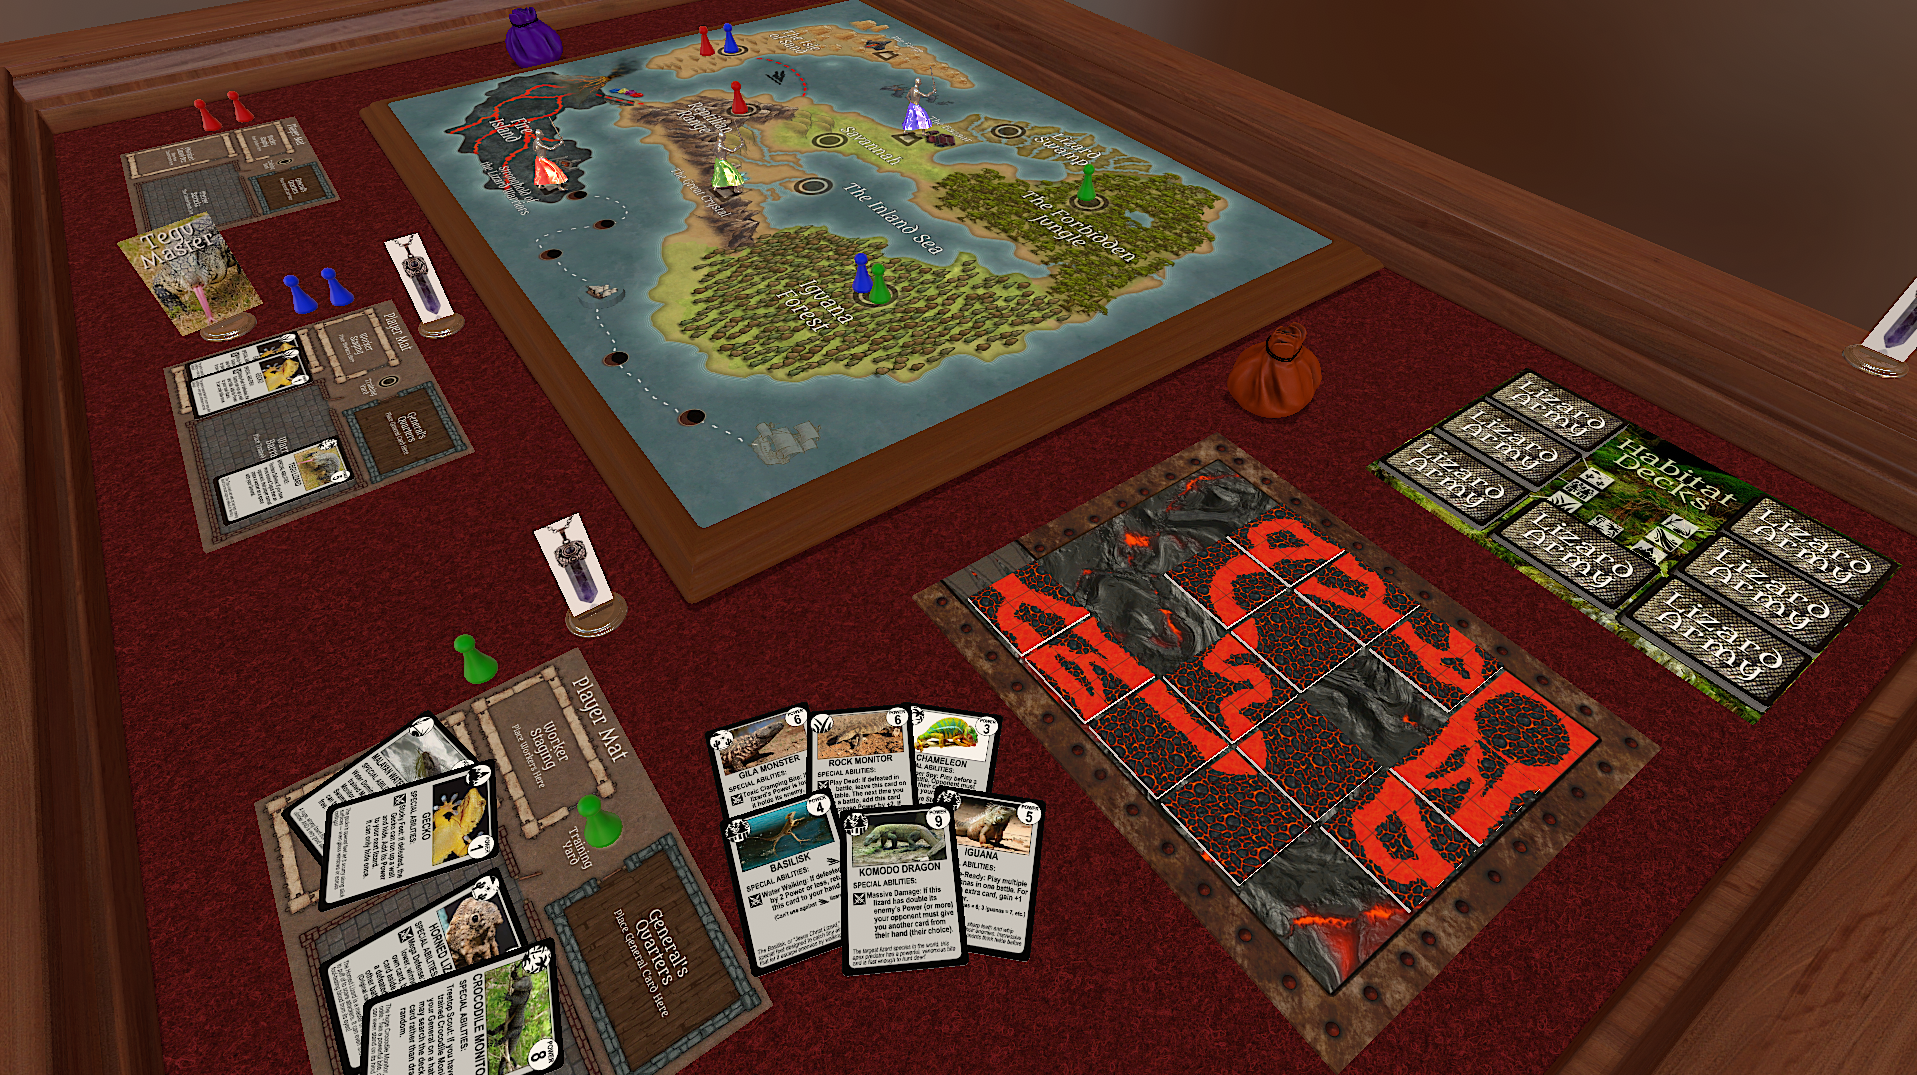 Game Layout on Tabletop Simulator